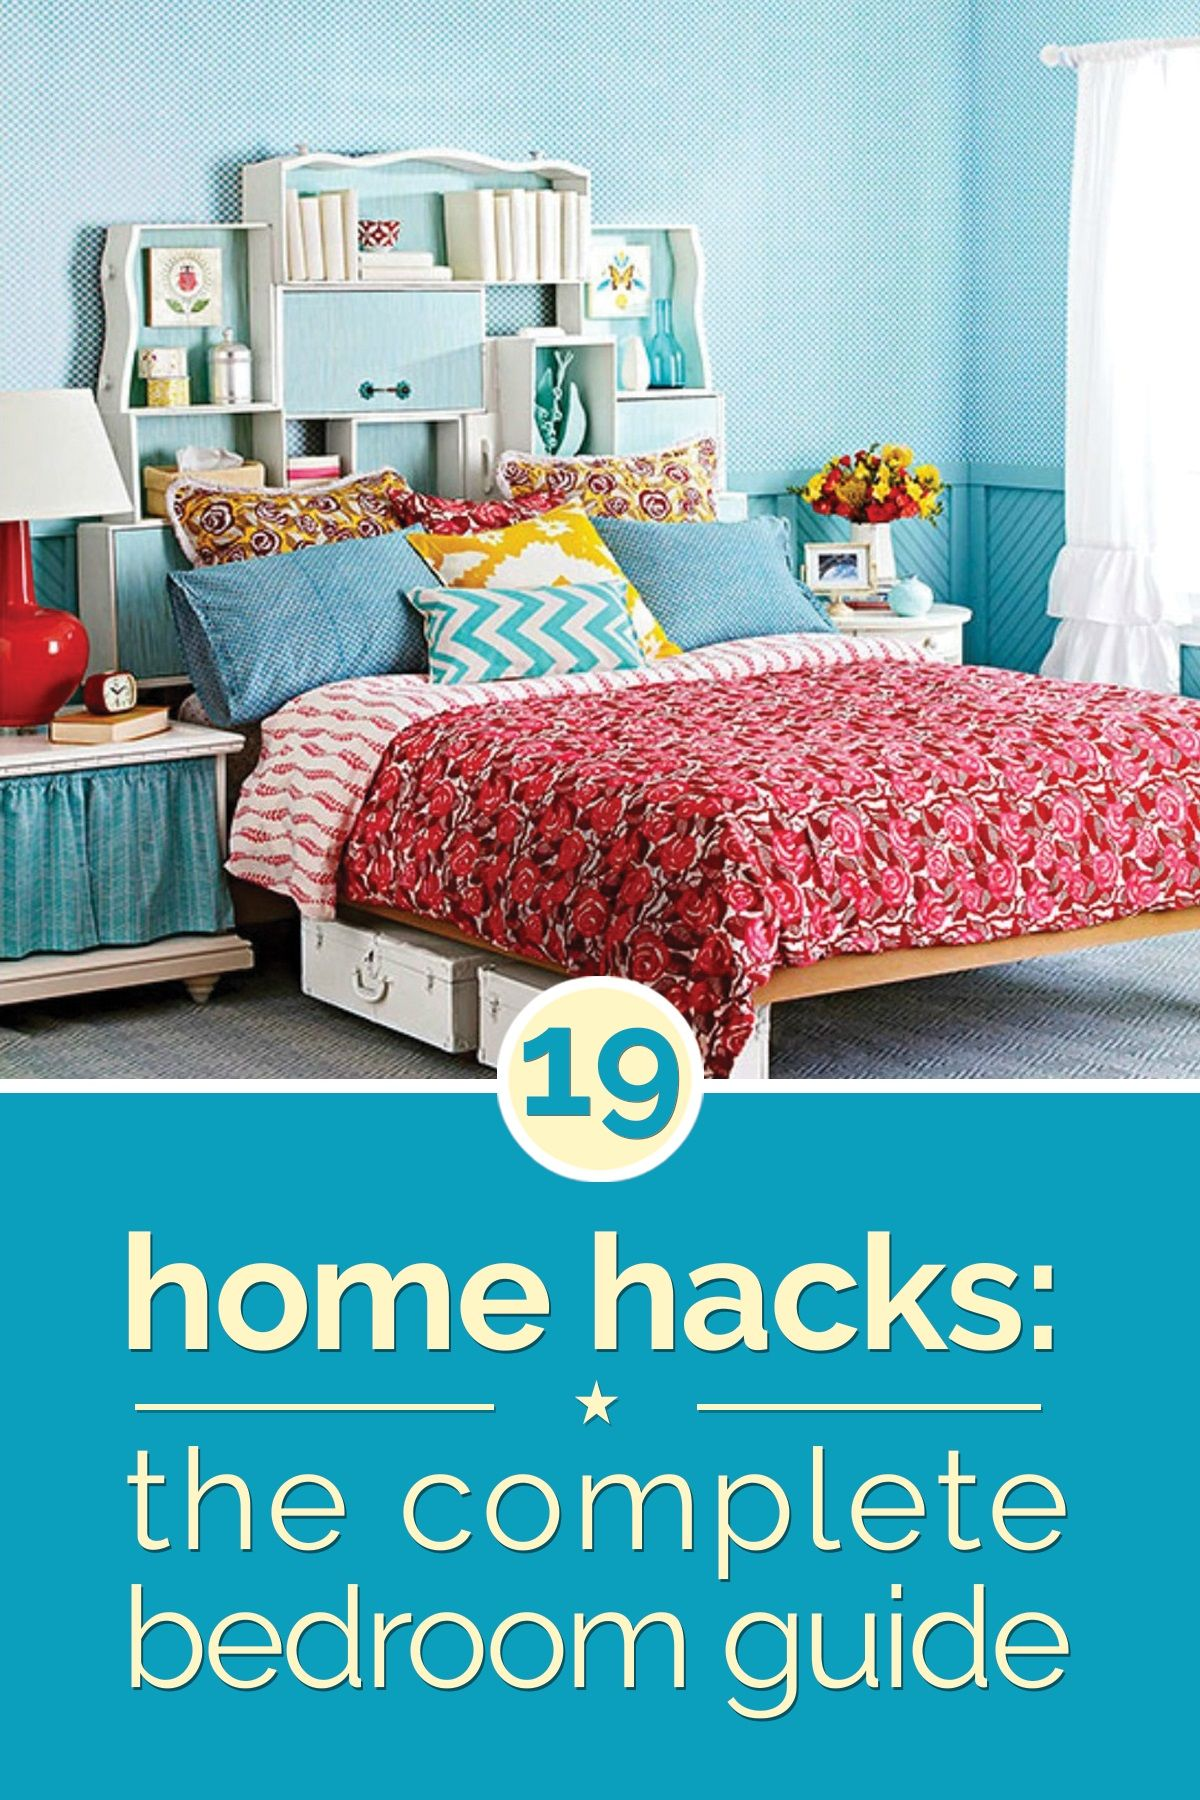 Home Hacks 19 Tips to Organize Your Bedroom Color